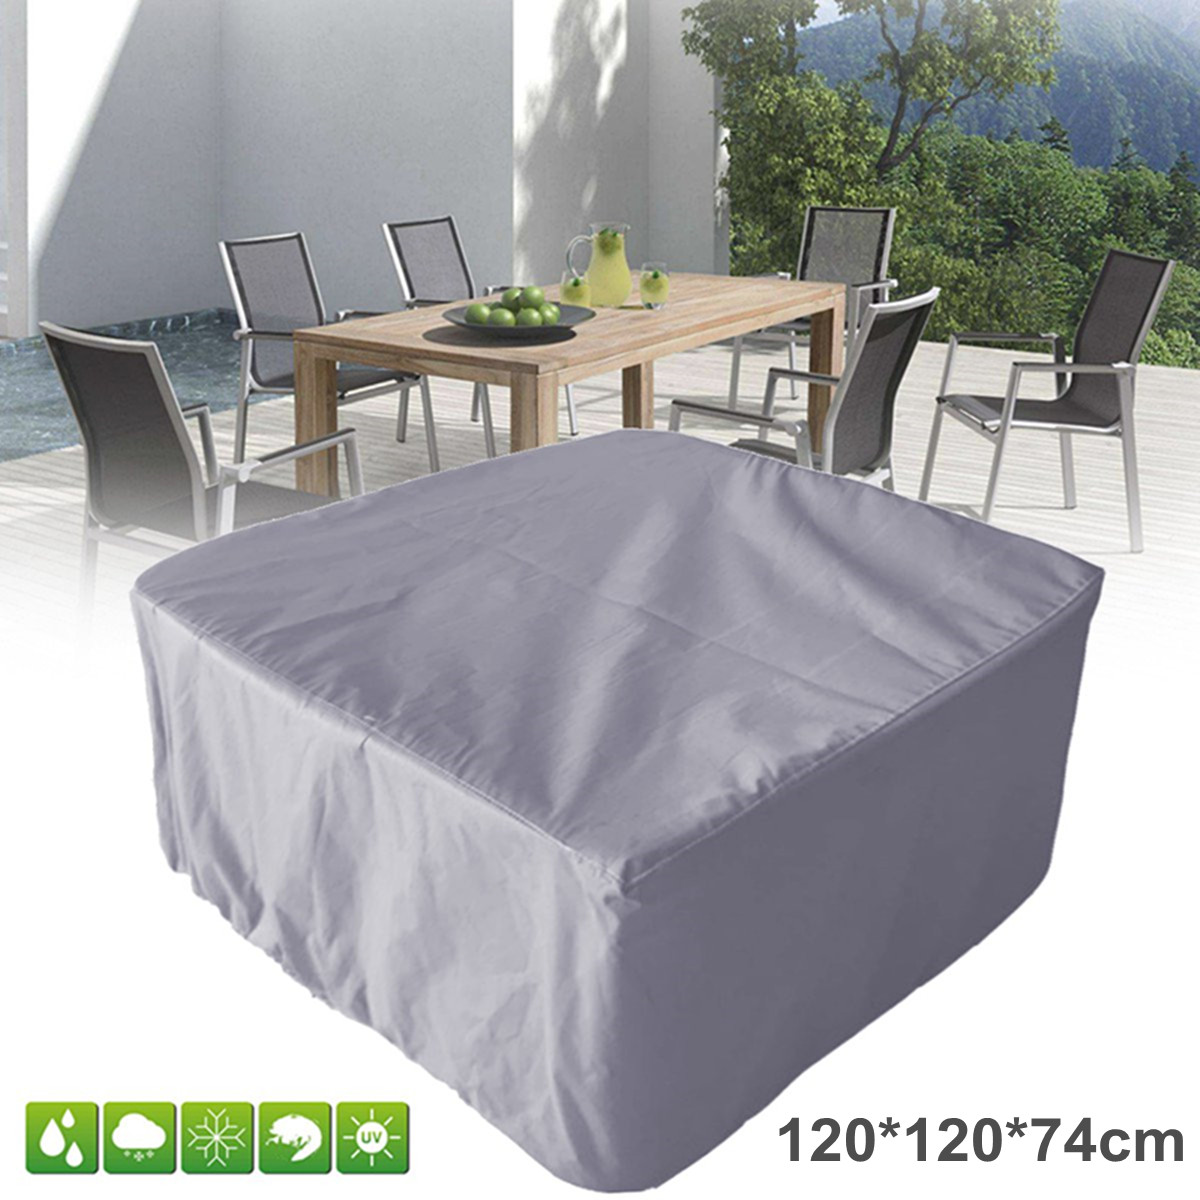 120*120*74cm Waterproof Outdoor Patio Garden Furniture Covers Rain Chair Covers For Sofa Table Chair Dust Proof Cover